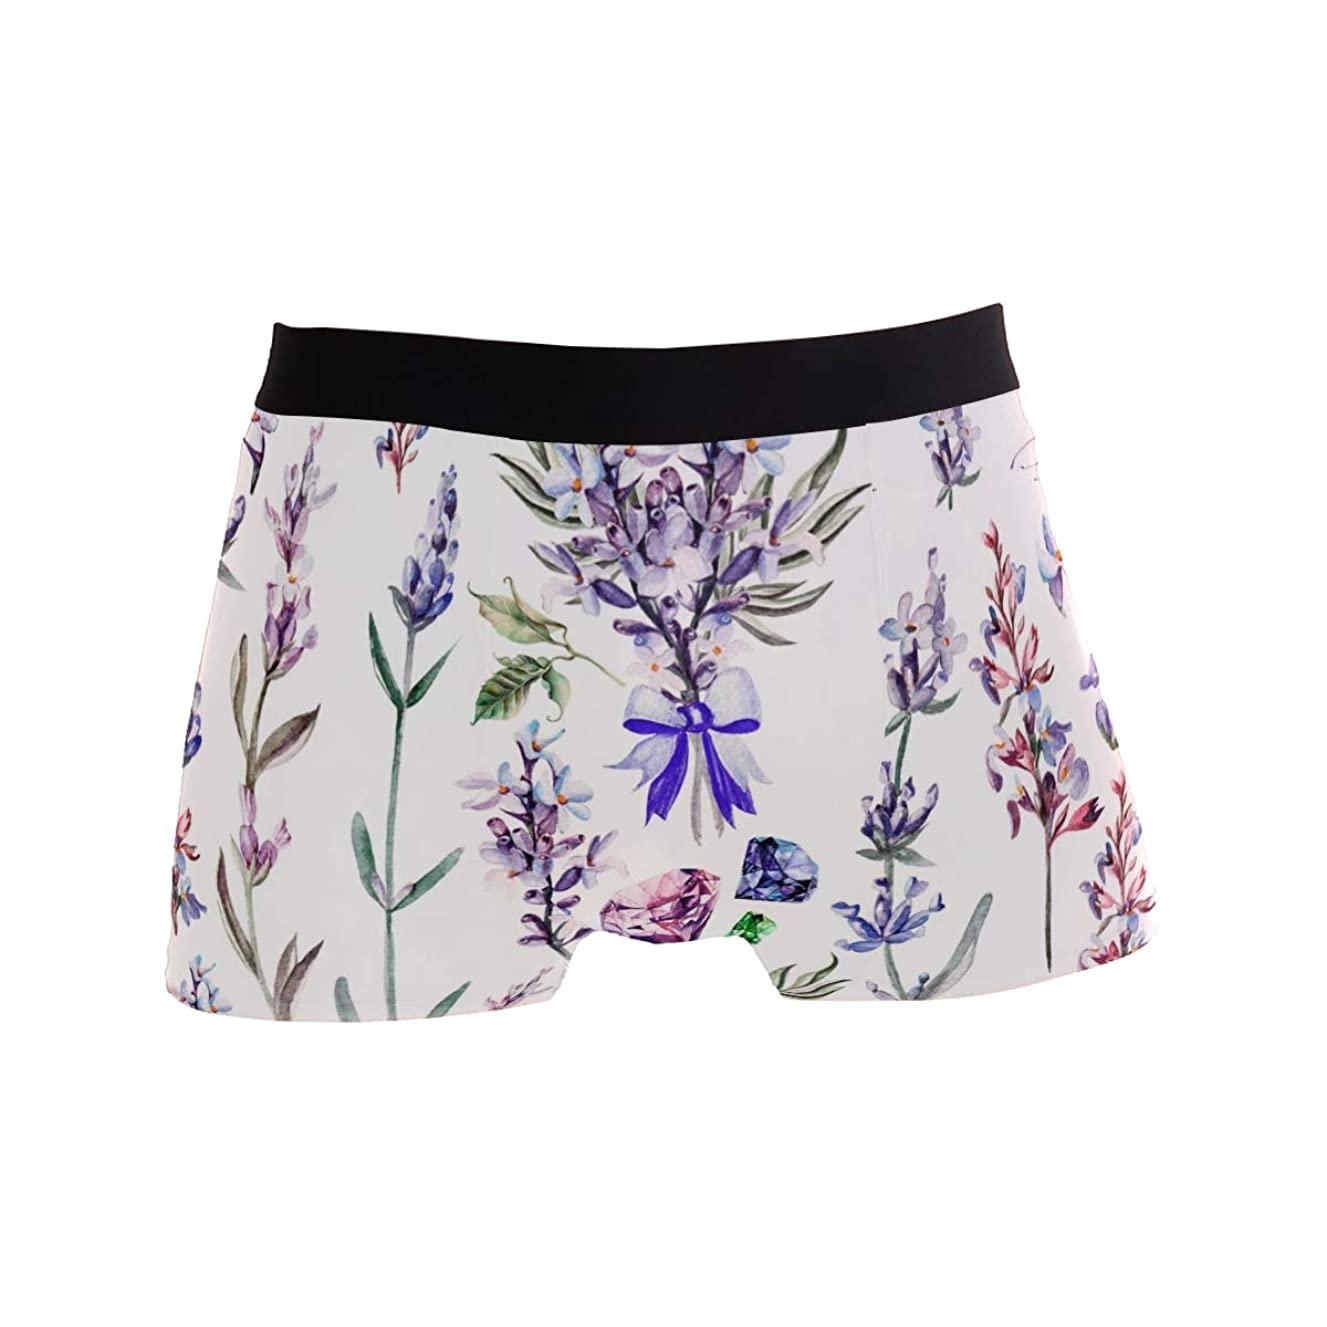 SLAFD Bundles of Flowers Men's Boxer Briefs Regular Soft Breathable Comfortable Underwear